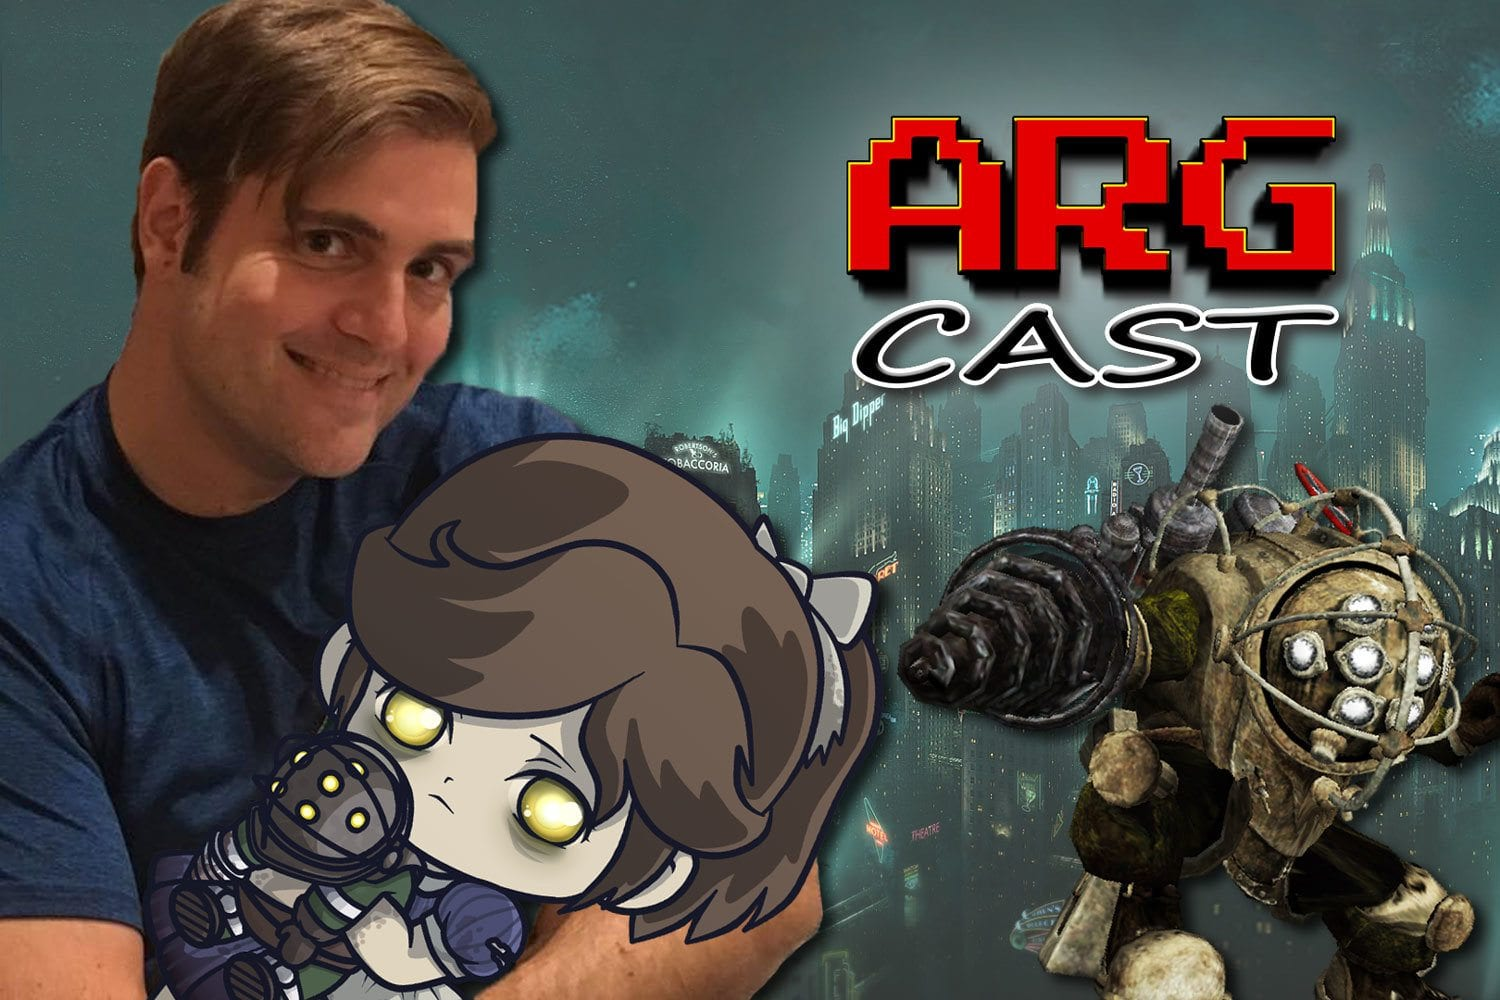 ARGcast #74: Under The Sea in BioShock with Bill Gardner